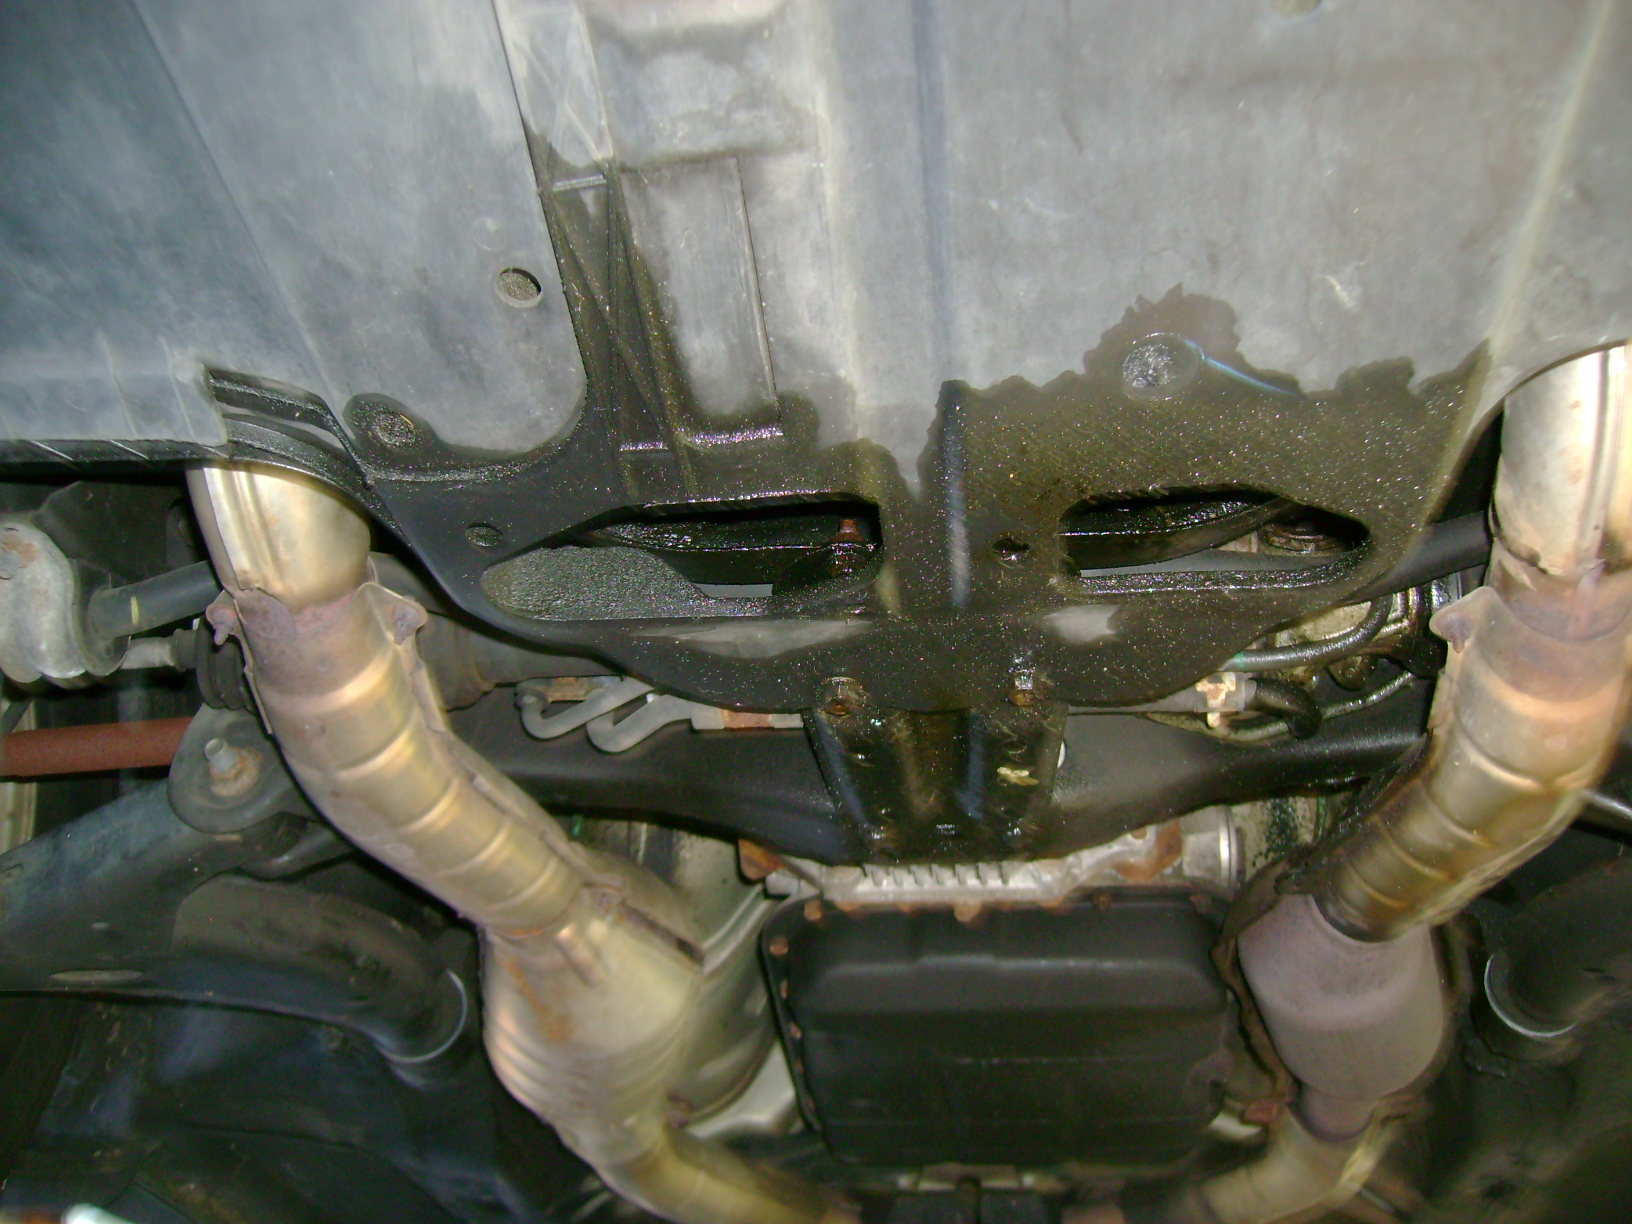 Oil For Subaru Outback >> Please help with my oil leak - photos!! - Subaru Outback - Subaru Outback Forums